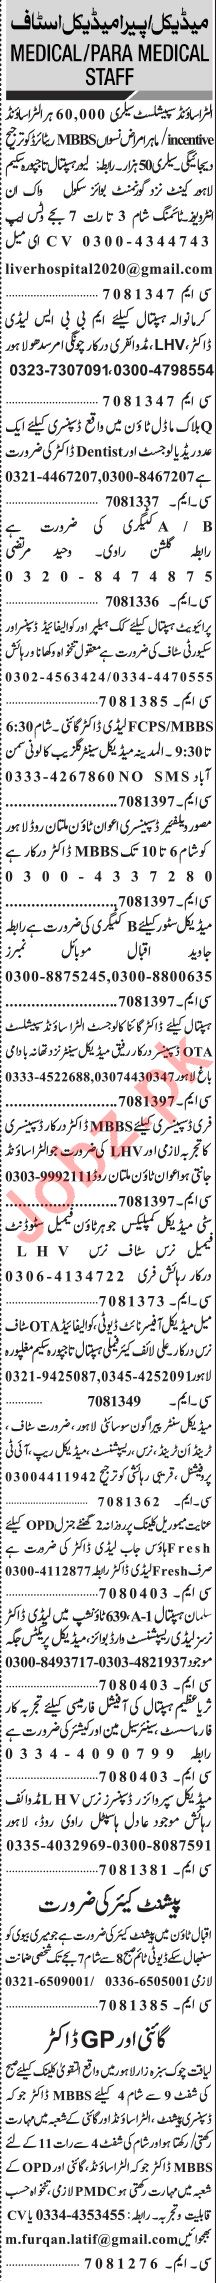 Jang Sunday Classified Ads 15th March 2020 for Medical